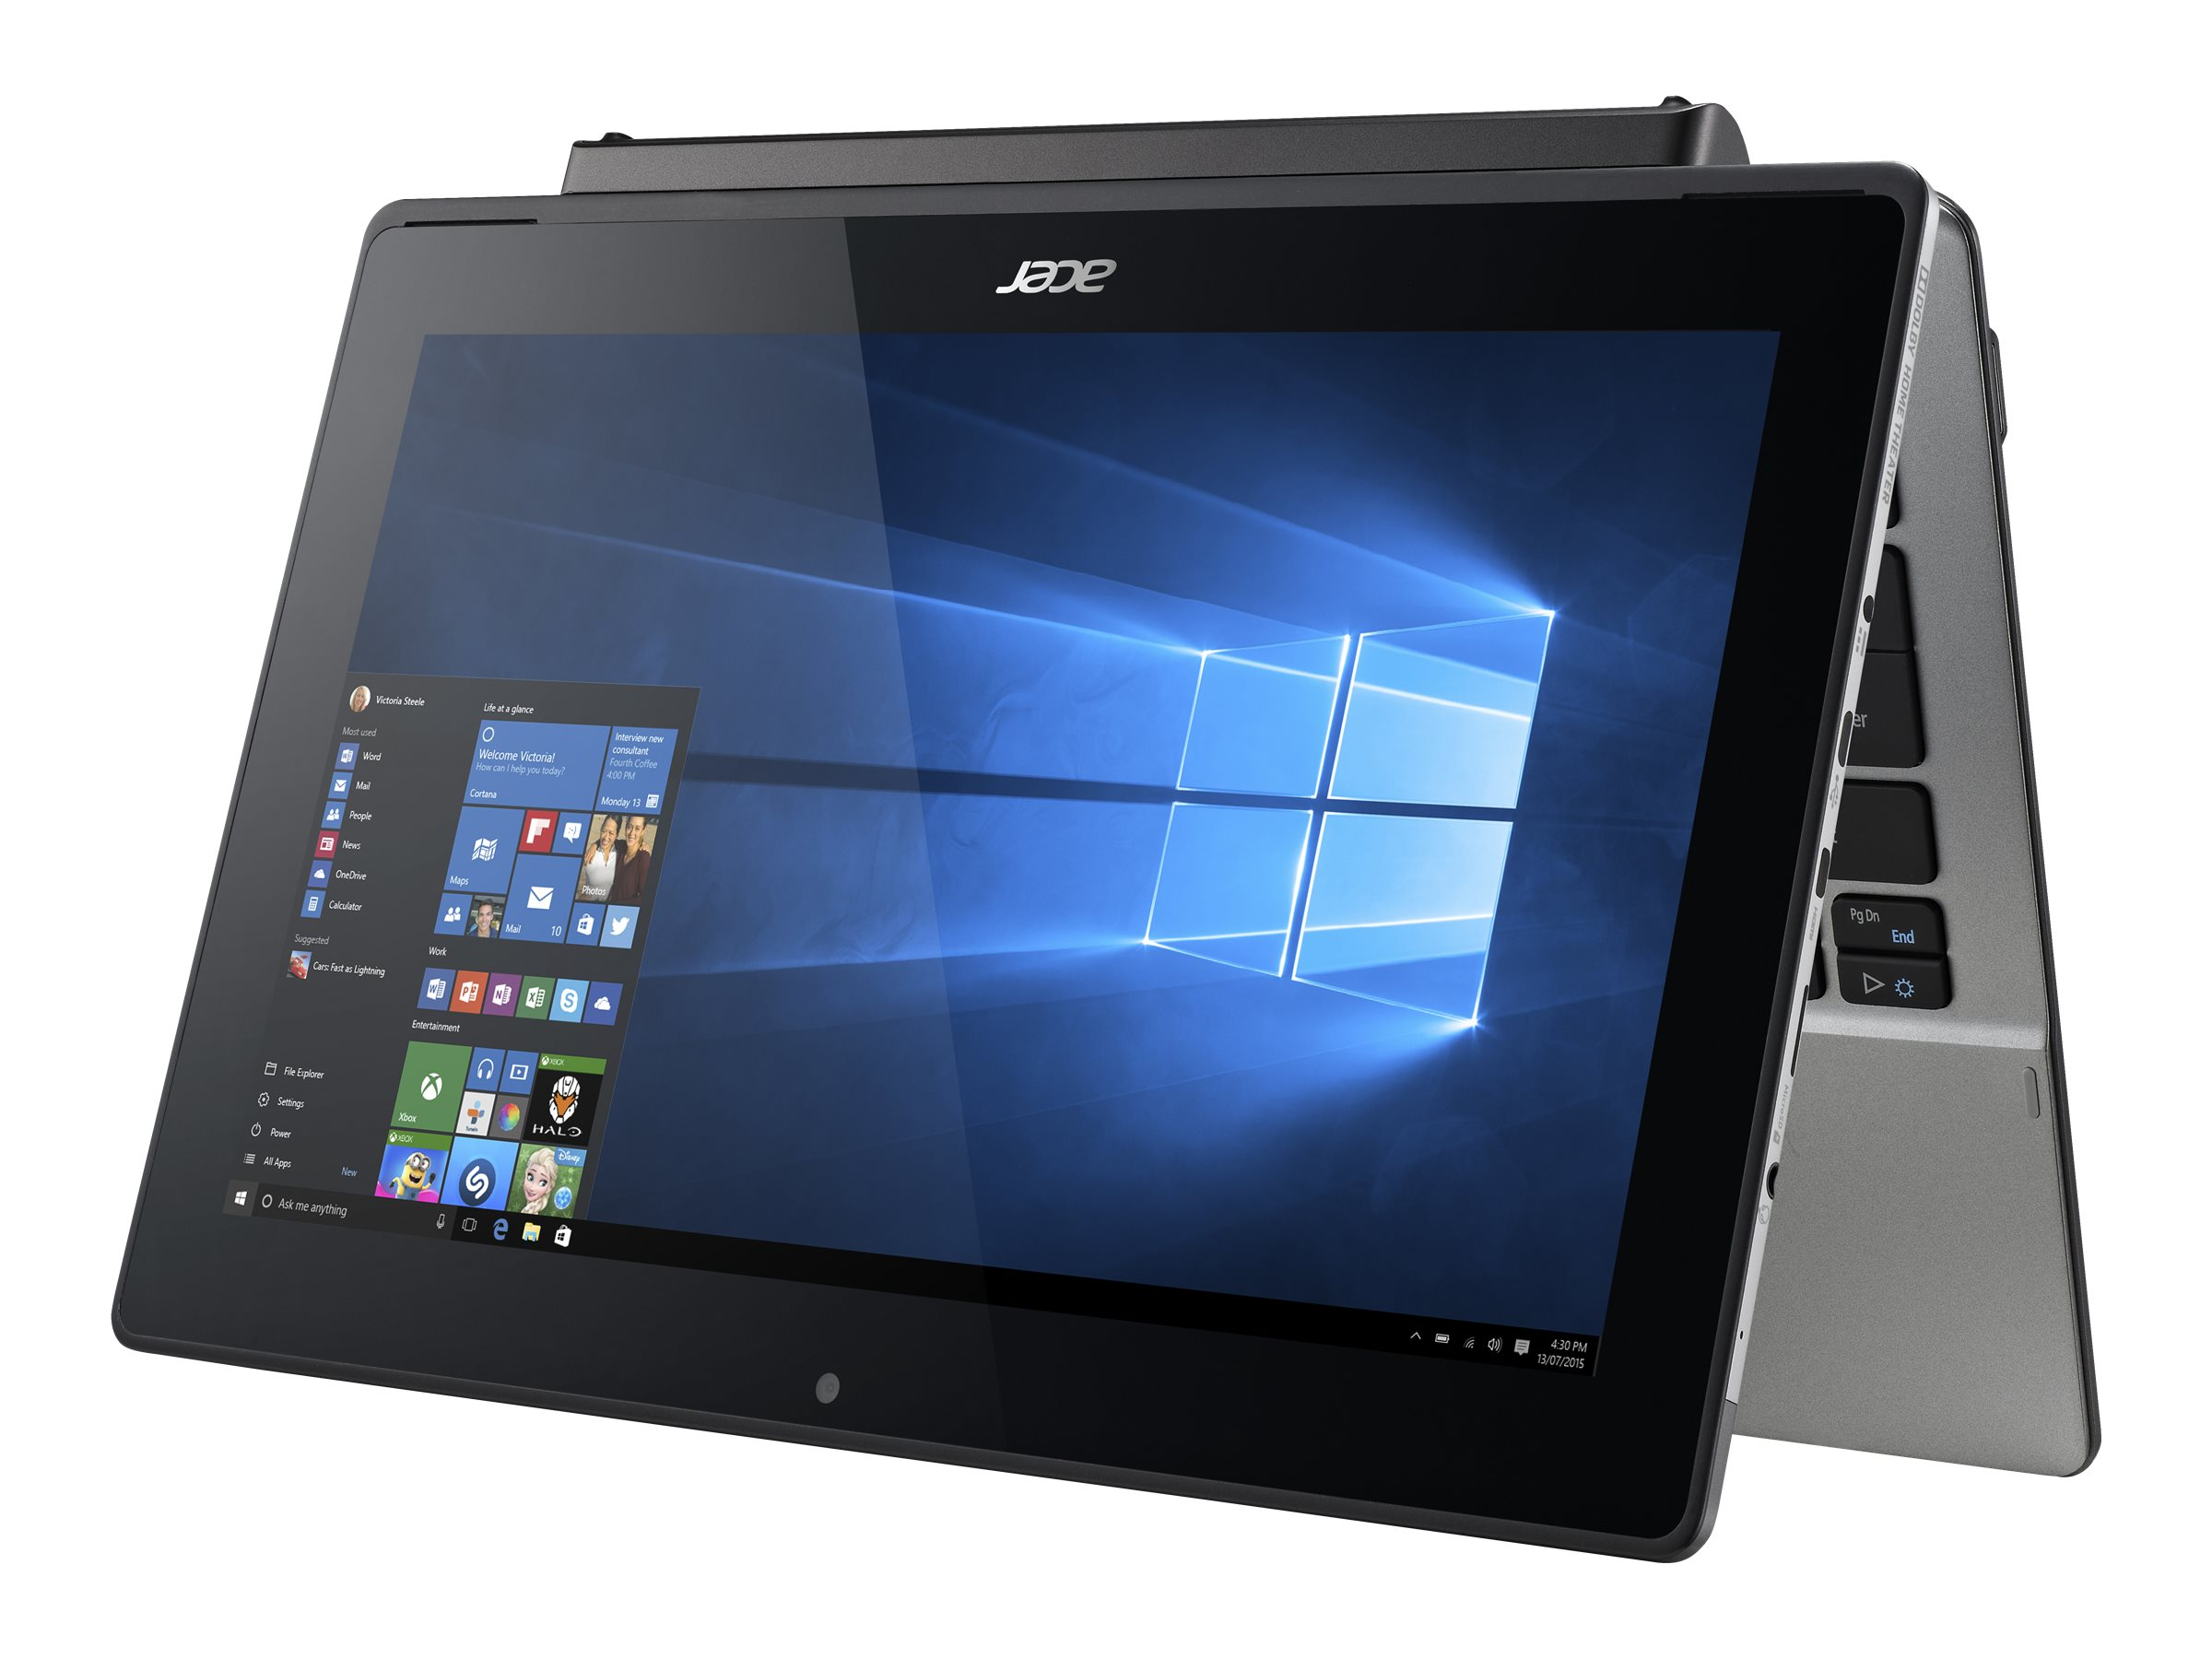 Acer Aspire Switch SW5-173P-61RD Core m-5Y10c 0.8GHz 4GB 128GB SSD ac BT 2xWC Kyb Pen 11.6 FHD MT W10P64, NT.G9GAA.001, 31786624, Notebooks - Convertible